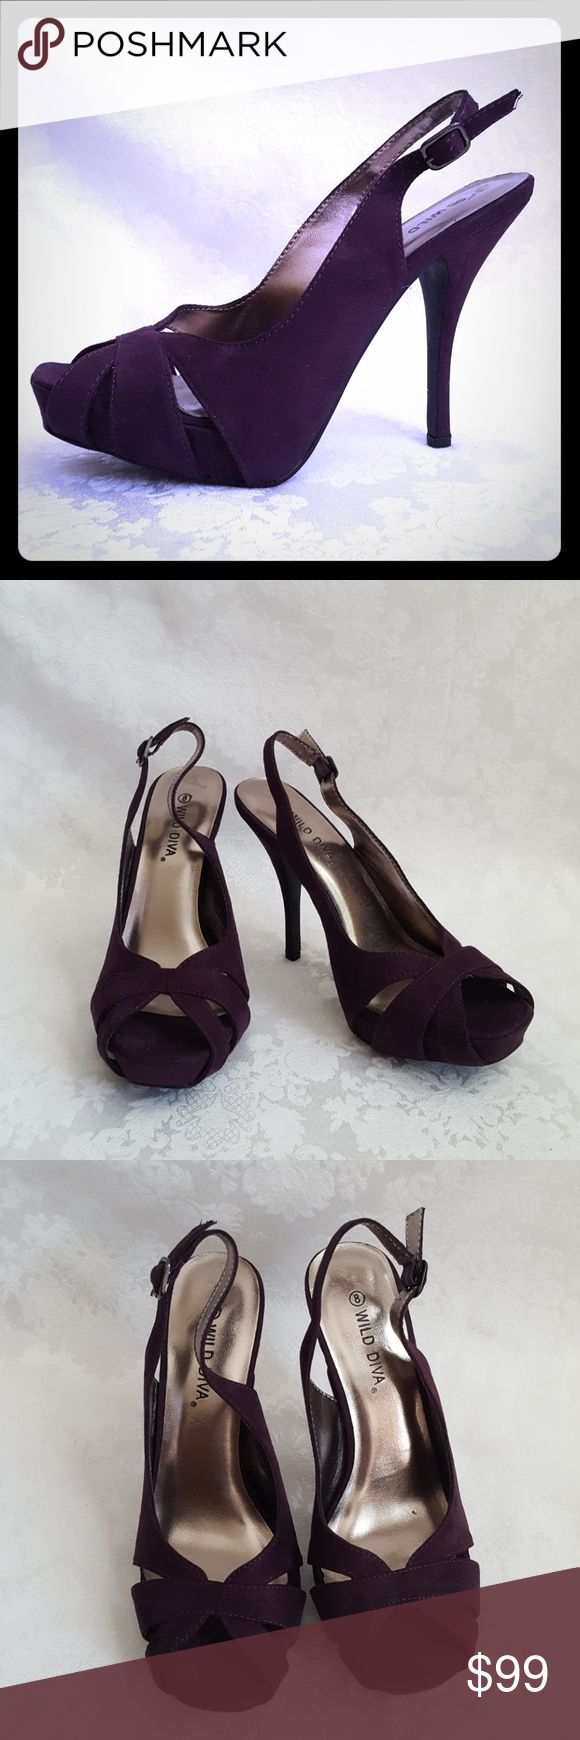 "New Dark Purple Suede High Heel Slingback Sandals Like new! Wild Diva deep plum purple suede-like slingback sandal with 4 3/4"" heel. Adjustable ankle strap with buckle.   Excellent condition. Smoke free and pet free home.   Check out my other listings - 100's of 👠shoes👠, 👢boots👢 and 👜bags👜. Bundle 2 or more and save money! 💲💵💲 Wild Diva Shoes Heels"